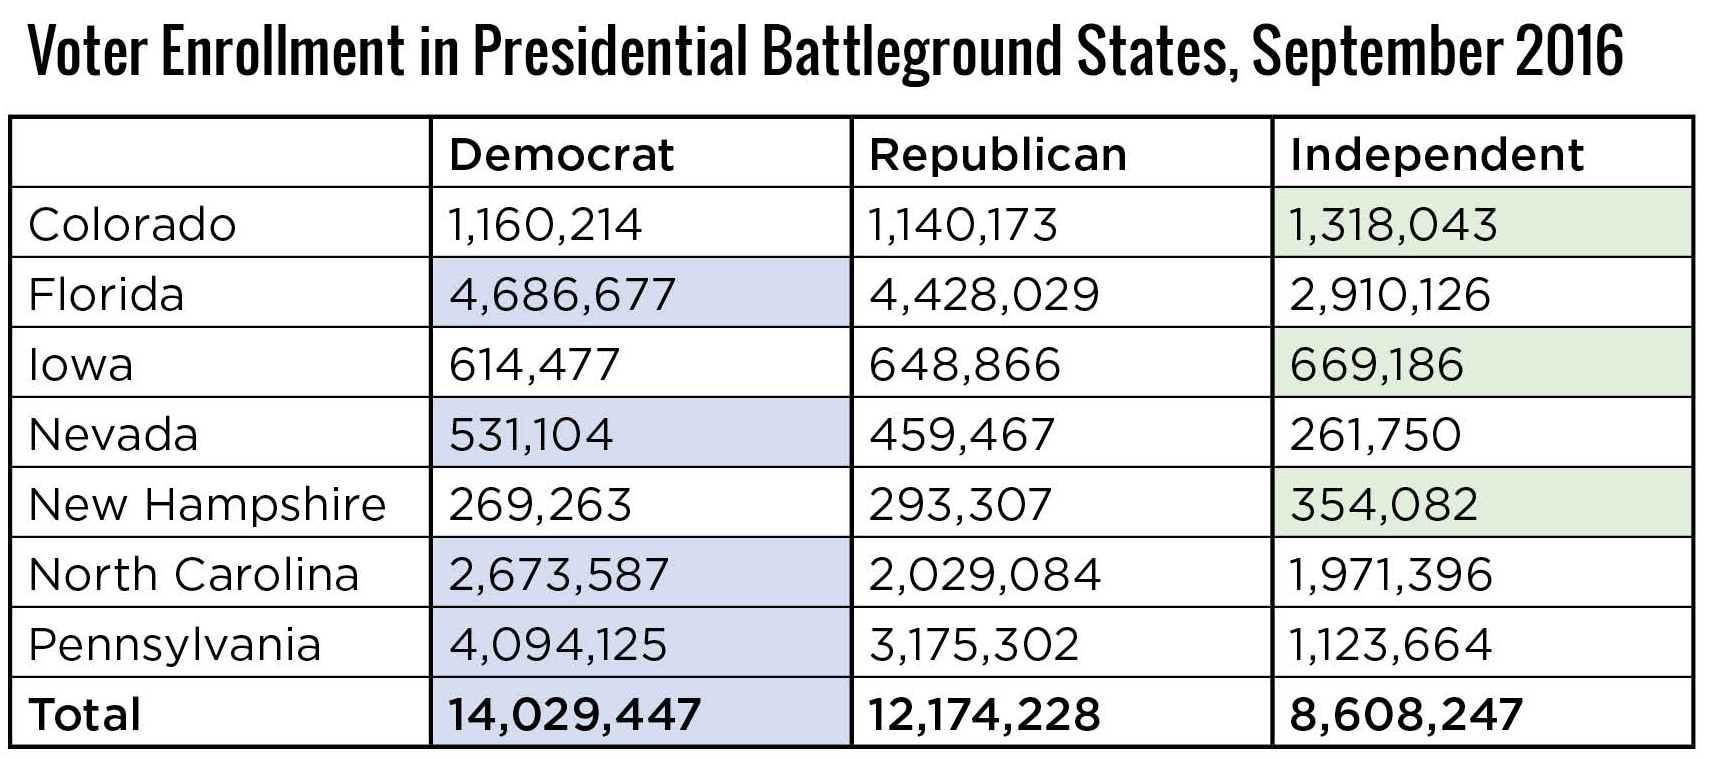 Voter Enrollment in Presidential Battleground States, September 2016